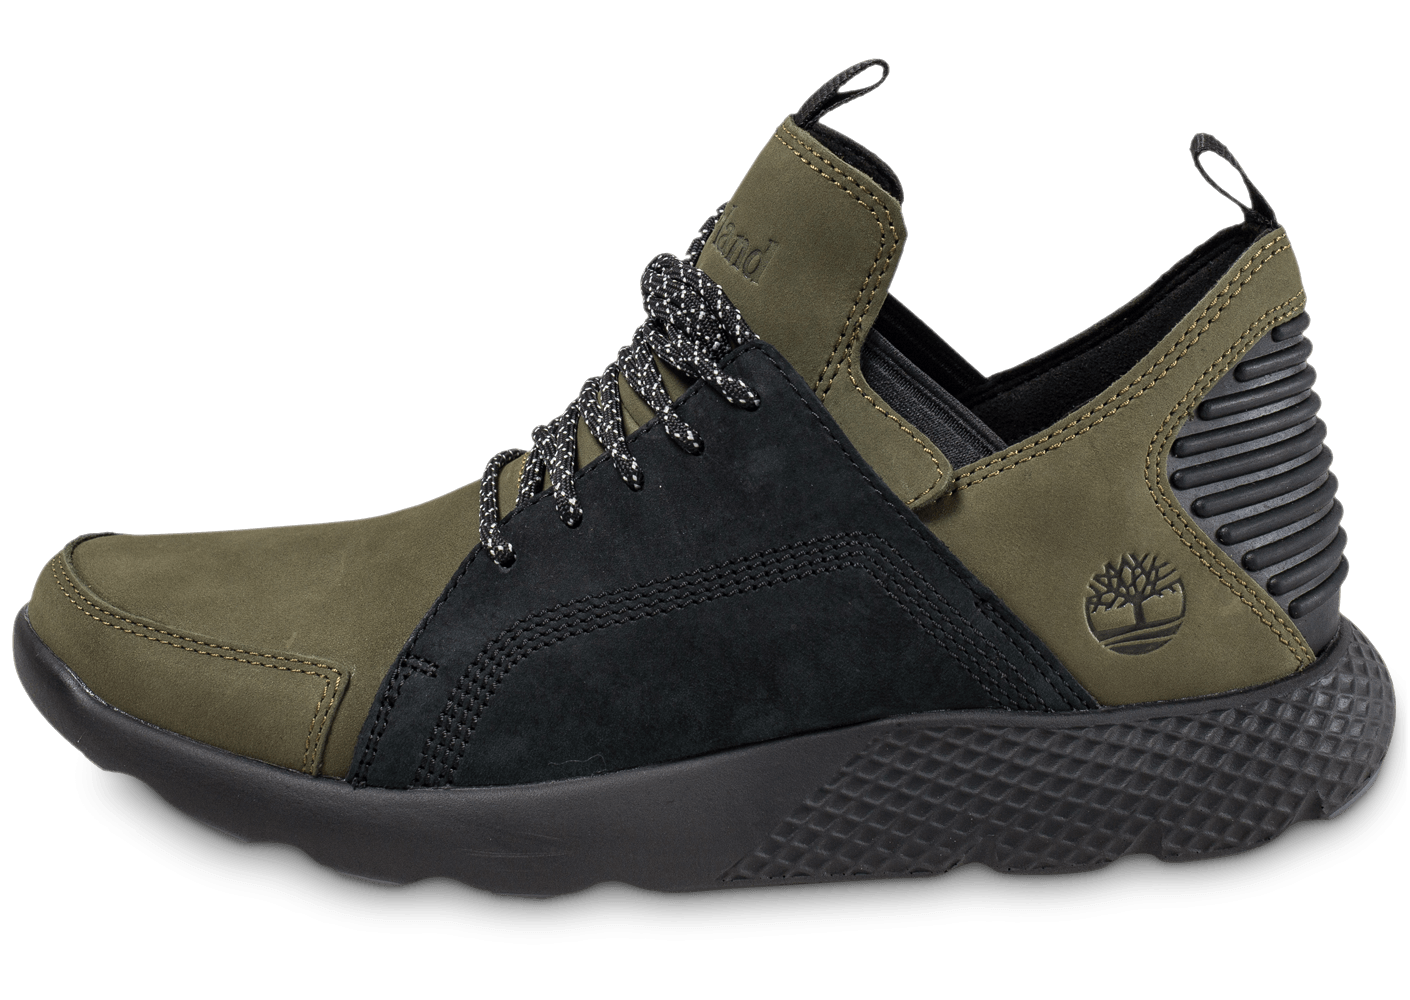 timberland flyroam wedge kaki chaussures homme chausport. Black Bedroom Furniture Sets. Home Design Ideas